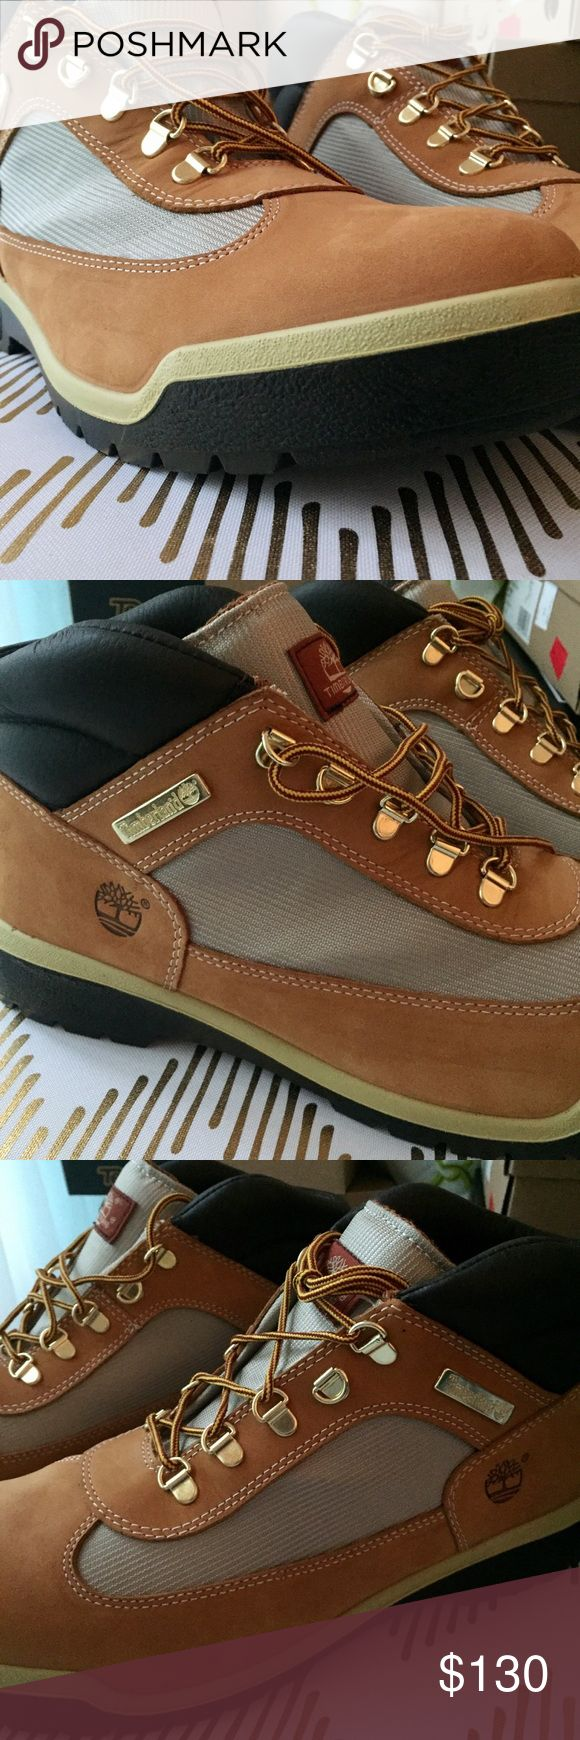 NWT MEN'S TIMBERLANDS WATERPROOF FIELD BOOTS Waterproof. Canvas. Leather. Retro. Our men's field boots are better than ever this season, packed with the performance you want when you're out on the trails and the style you want for your weekend look.  Premium waterproof leather uppers Waterproof membrane keeps feet dry in any weather Laces are made from 100% recycled nylon Padded collar for comfort Removable anti-fatigue footbeds for all-day comfort Direct-inject polyurethane outsoles…